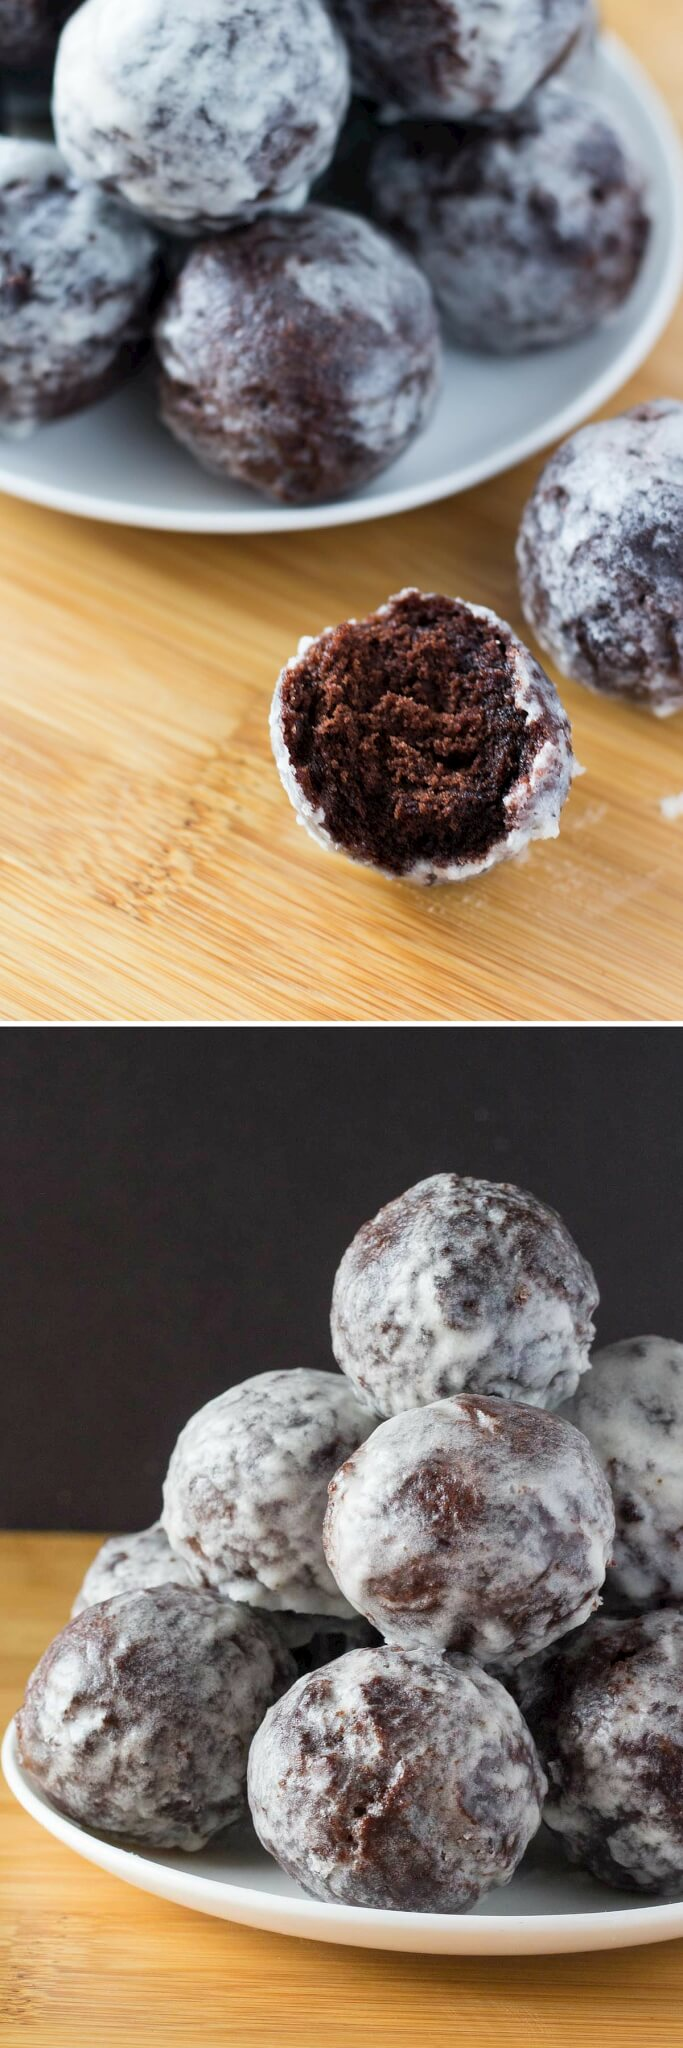 Perfectly fudgy Chocolate Doughnut Holes dipped in sweet vanilla glaze! Fluffy, oh so moist & so much better than the doughnut shop! www.justsotasty.com